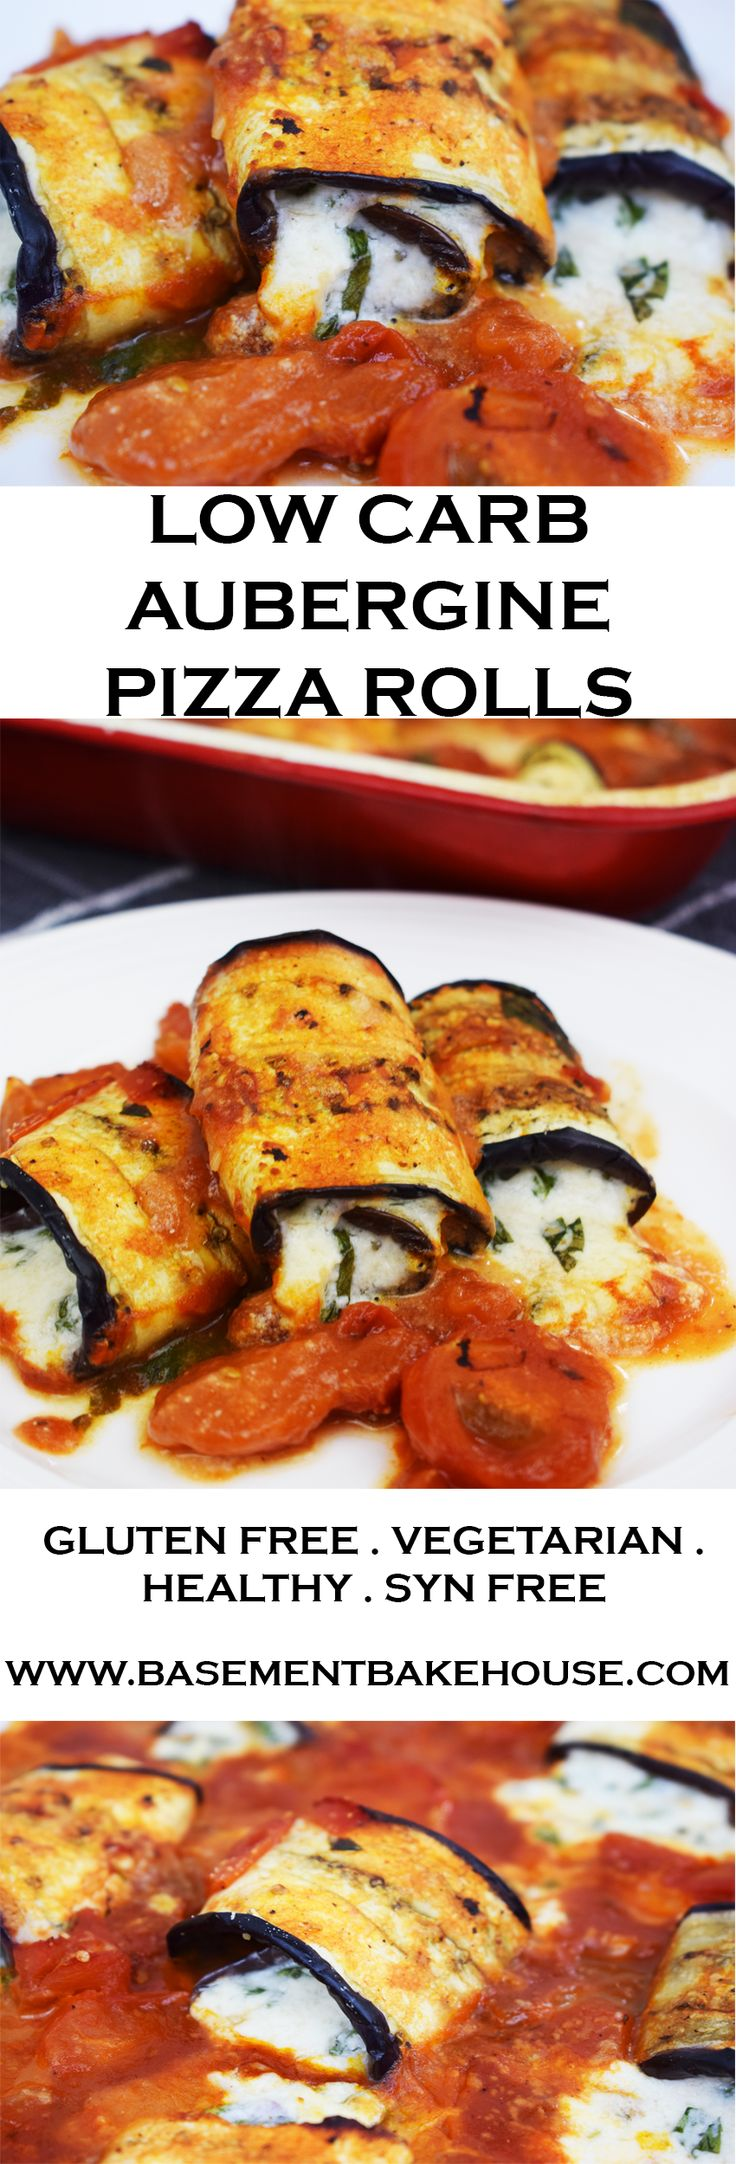 This Low Carb Aubergine Pizza Rolls recipe is gluten free, healthy and syn free on Slimming World! Filled with a cream cheese, parmesan and basil filling and a rich homemade tomato sauce! The perfect low carb answer to your pizza cravings!